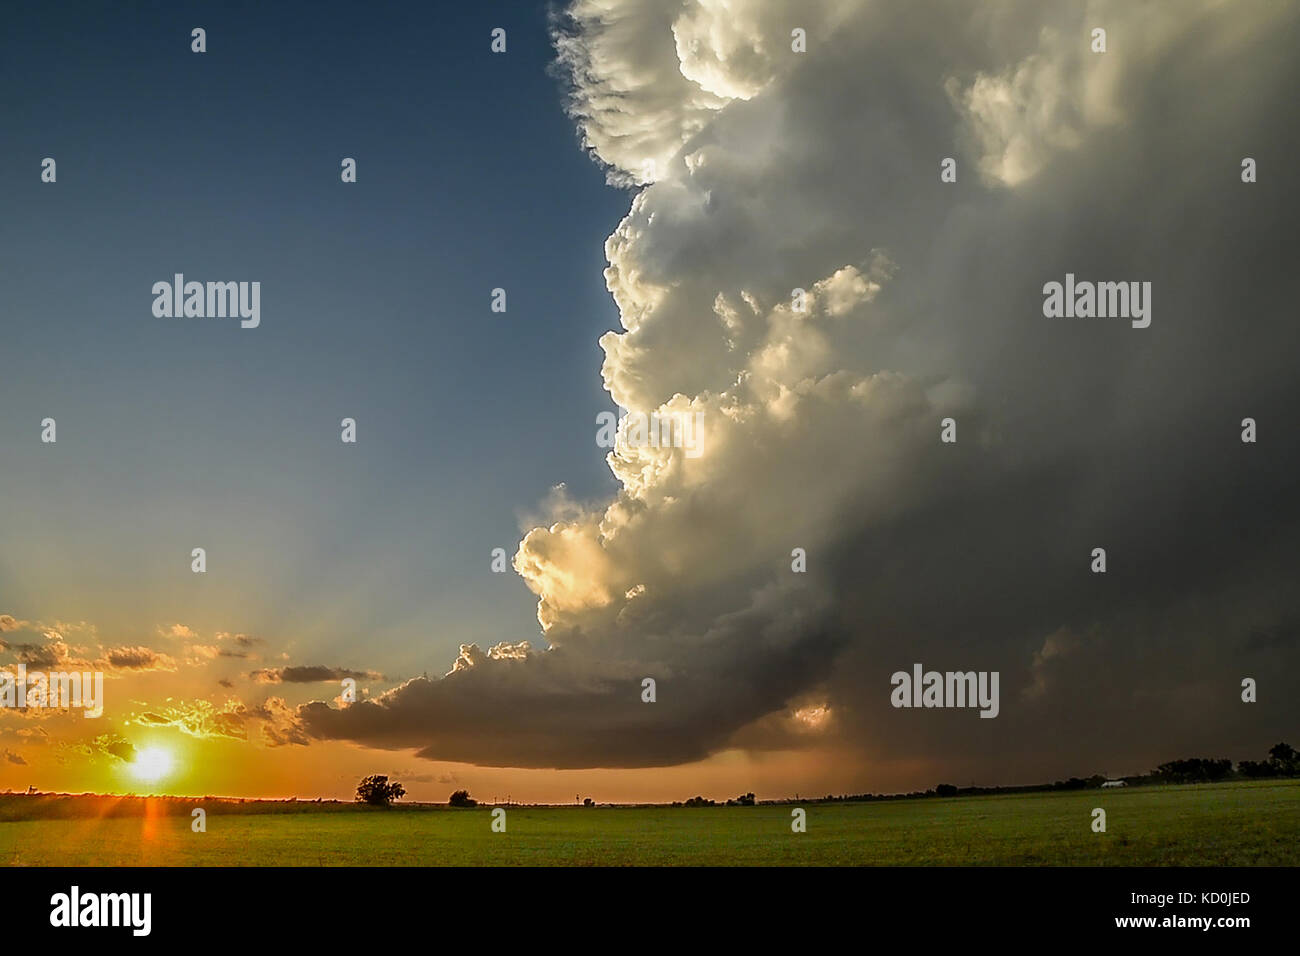 Low-precipitation supercell spiralling gracefully as the sun sets on the horizon, Chickasha, Oklahoma, USA Stock Photo